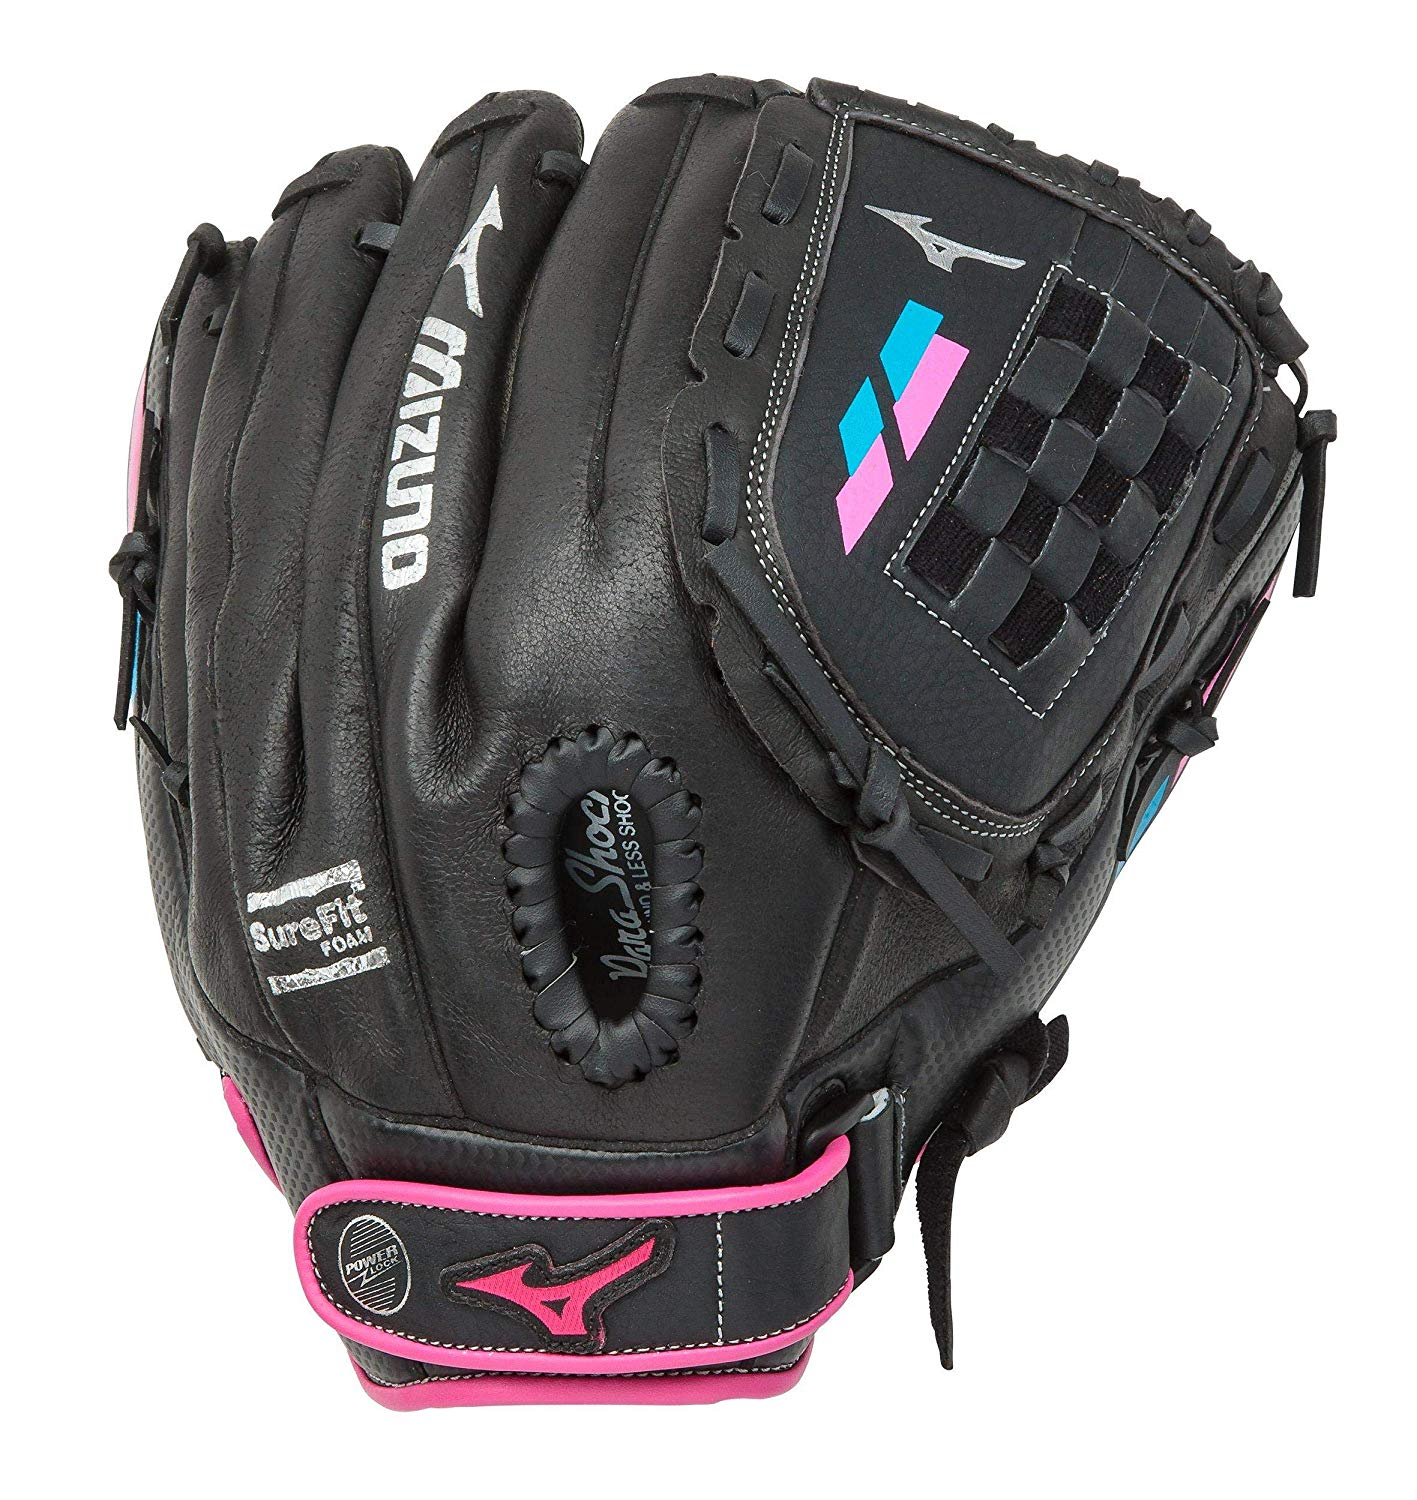 Prospect Finch – Youth Utility Mitt for Kids